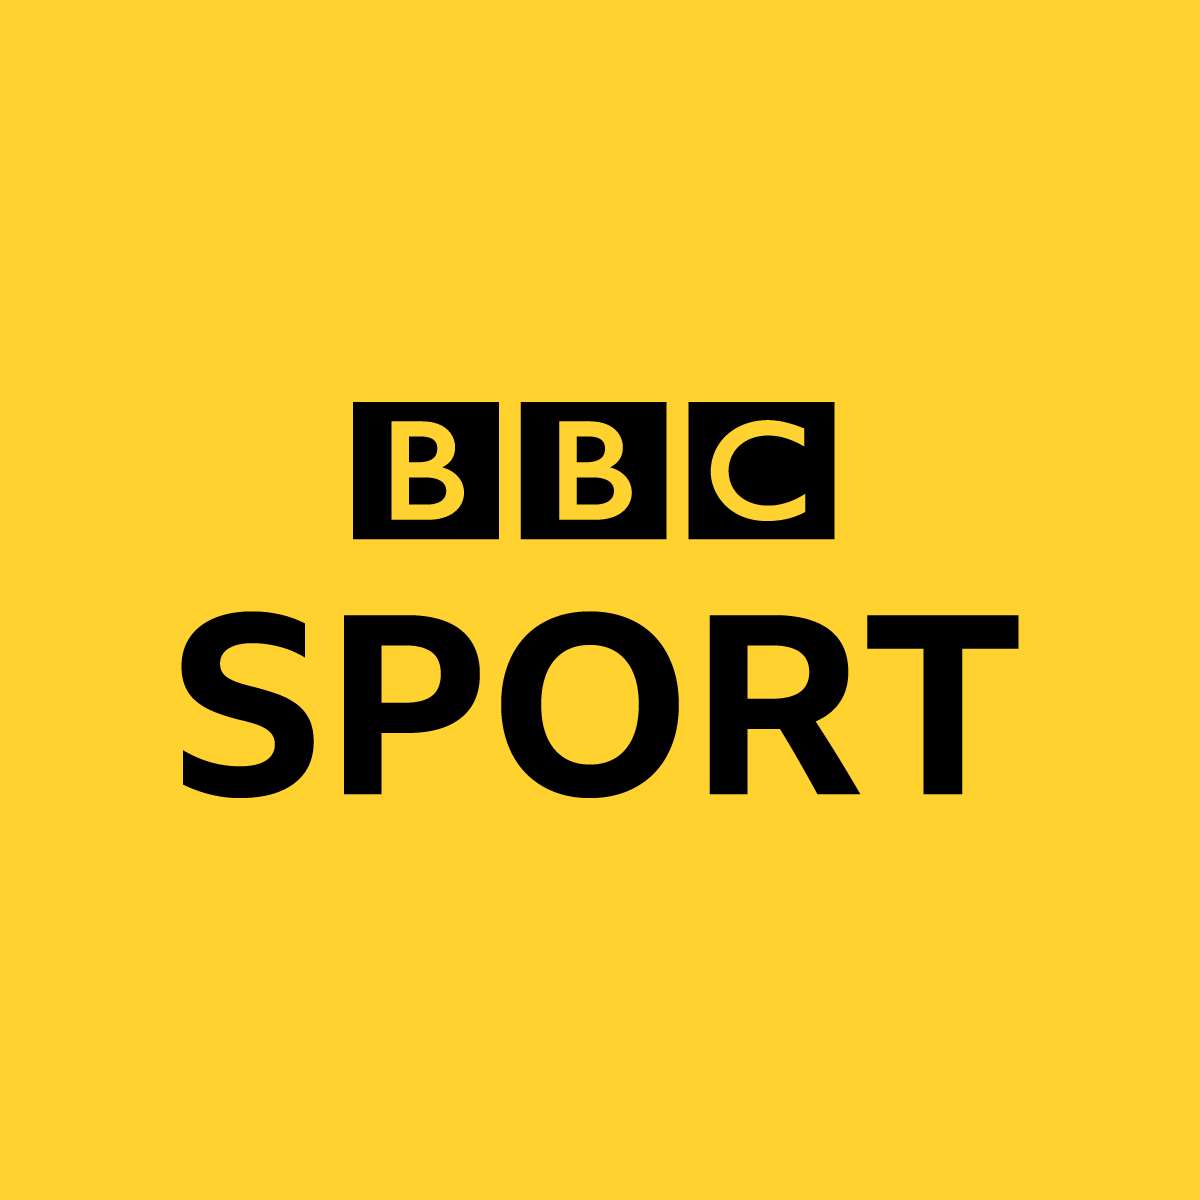 Watch: Marouane Fellaini scores winning goal on debut for Shandong Luneng in China - BBC Sport thumbnail